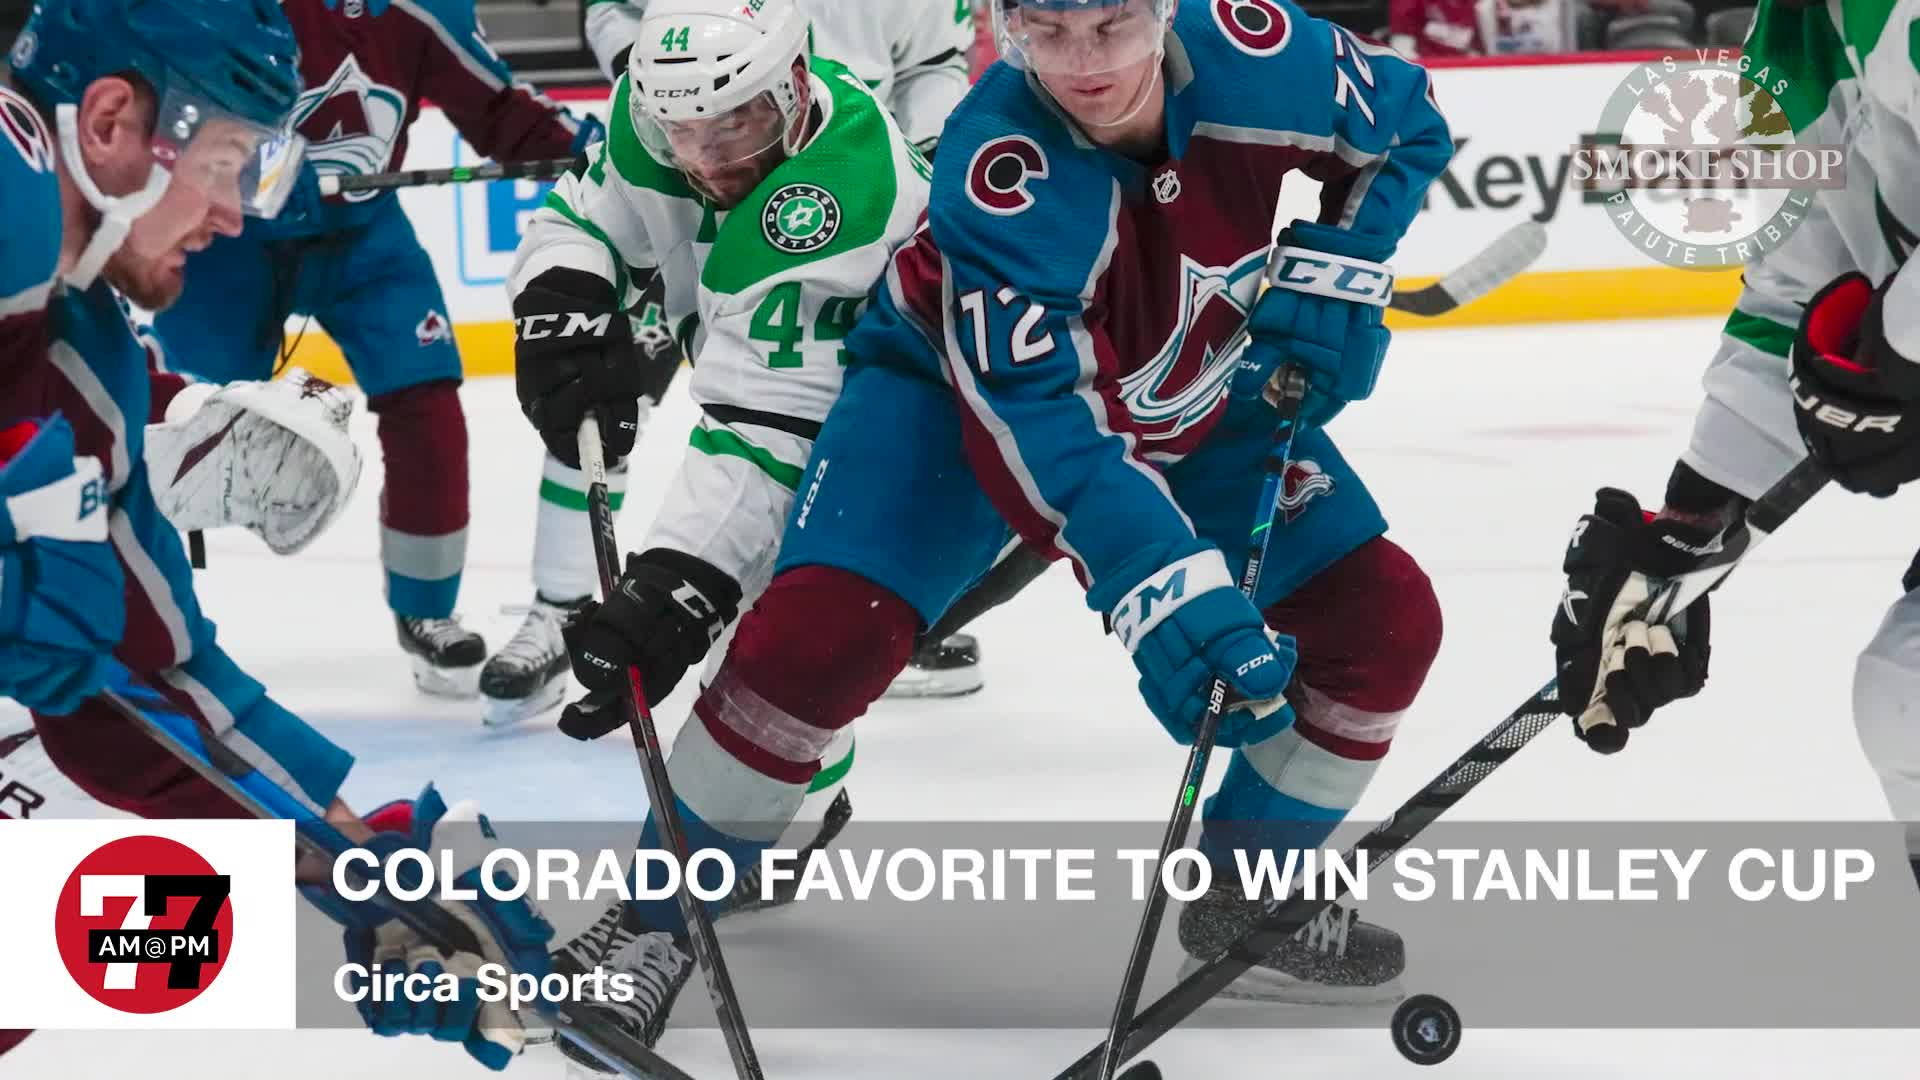 7@7PM Colorado Favorites to Win Stanley Cup